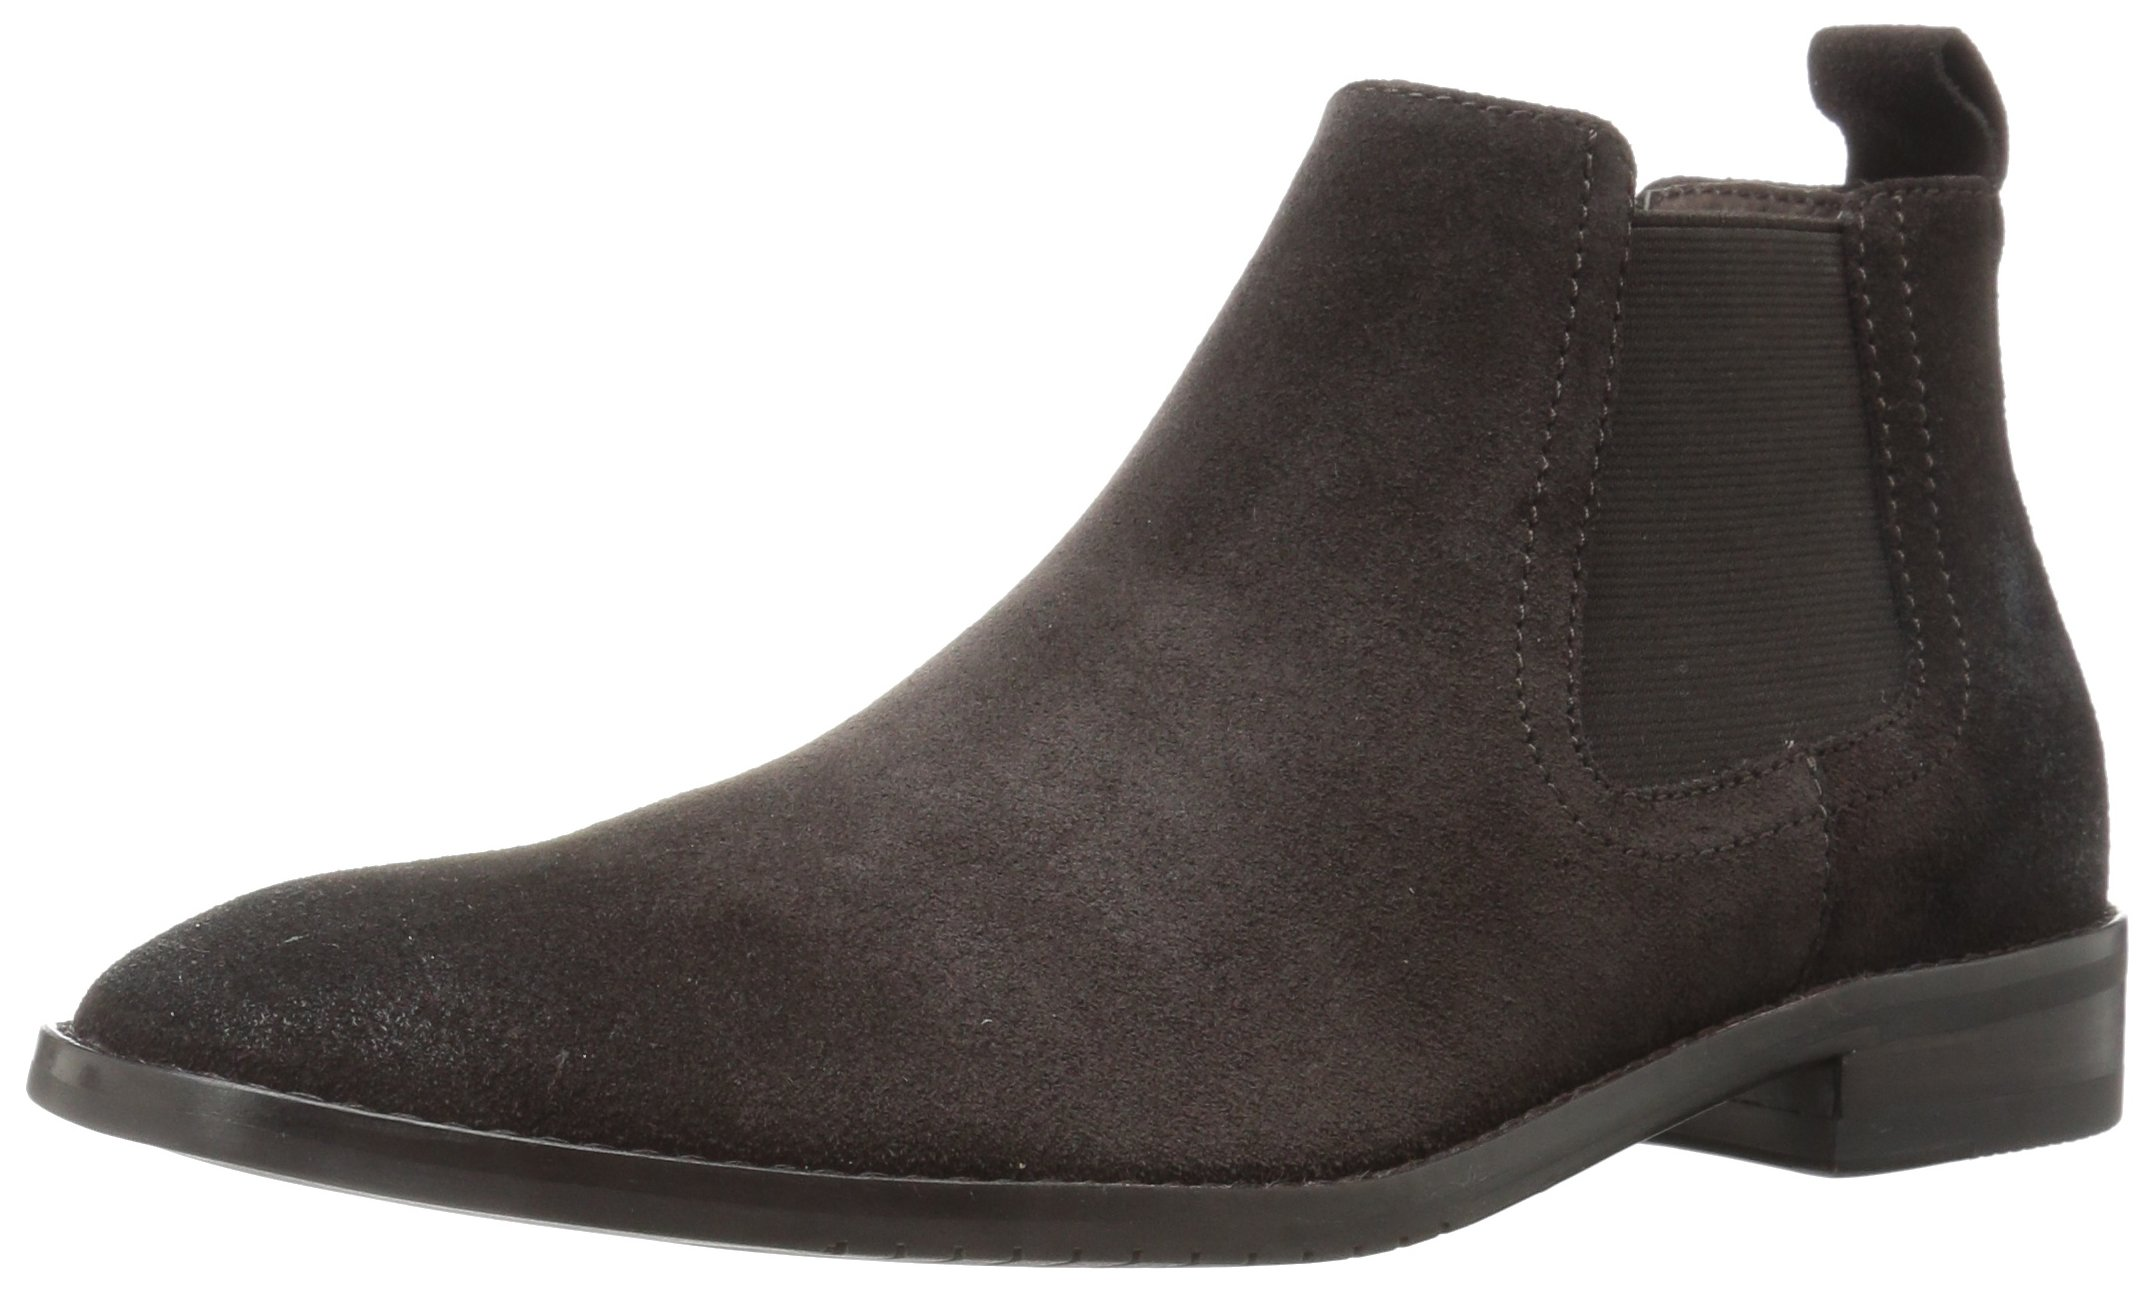 206 Collective Men's Capitol Ankle Chelsea Boot, Chocolate Brown Burnish, 13.5 D US